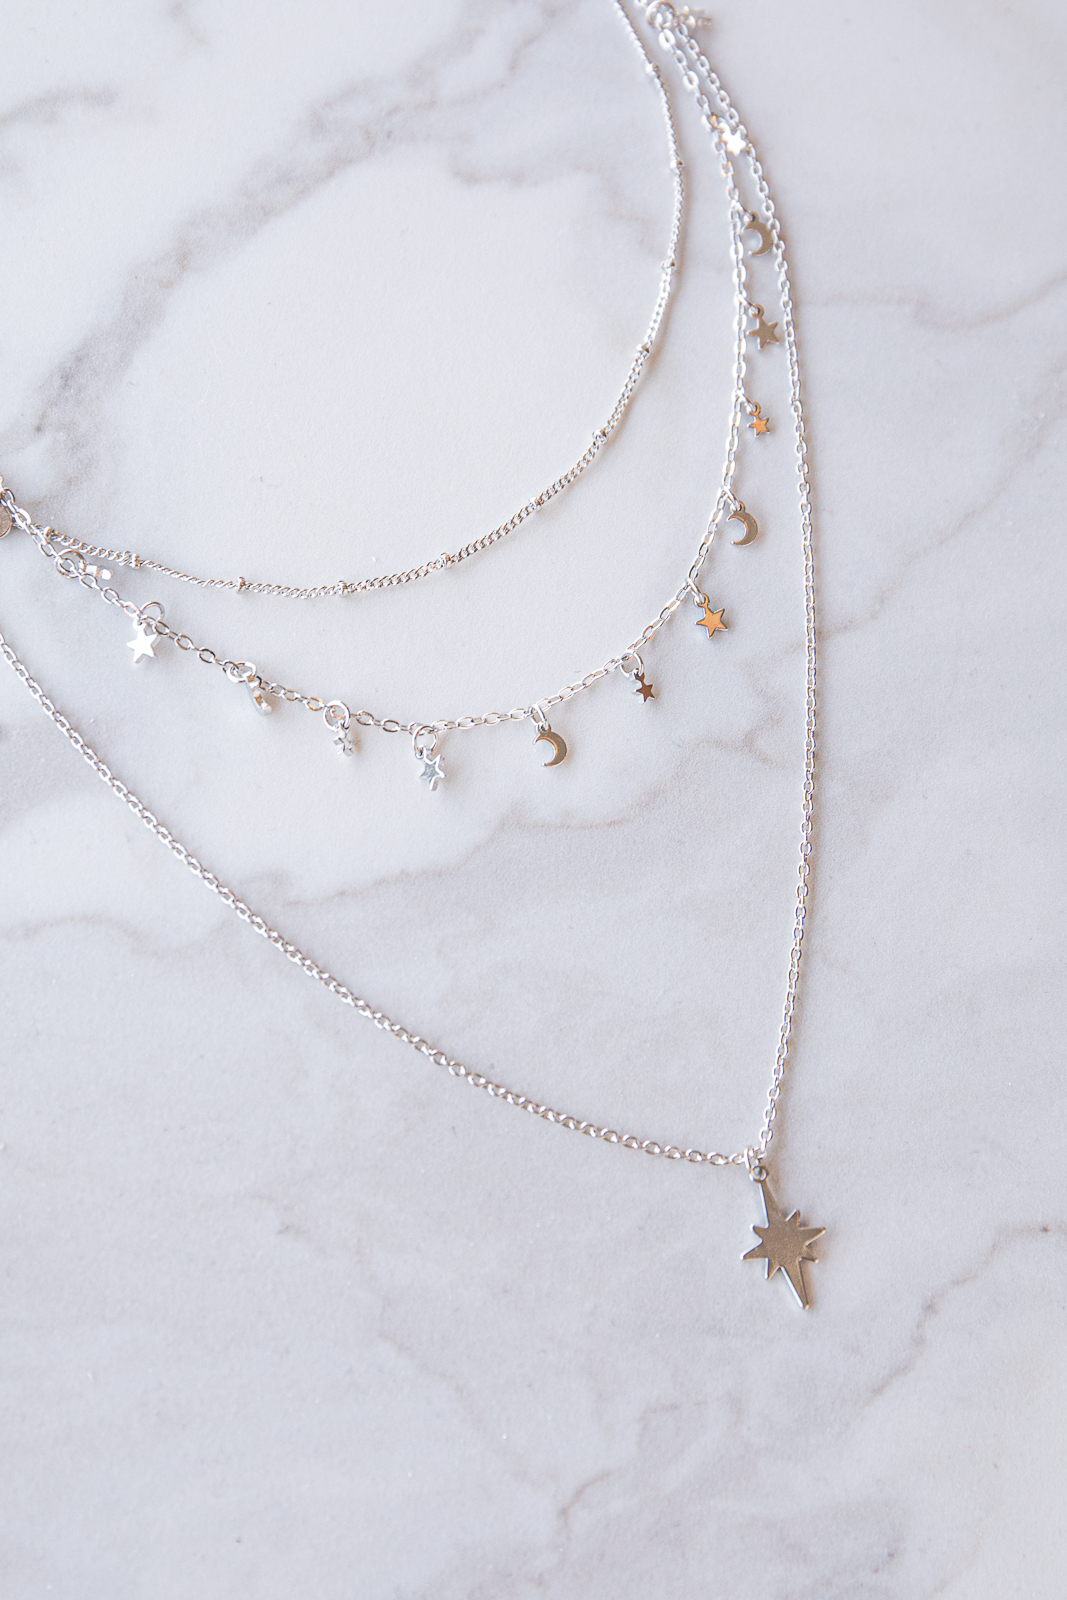 Silver Layered Chain Necklace with Star and Moon Charms